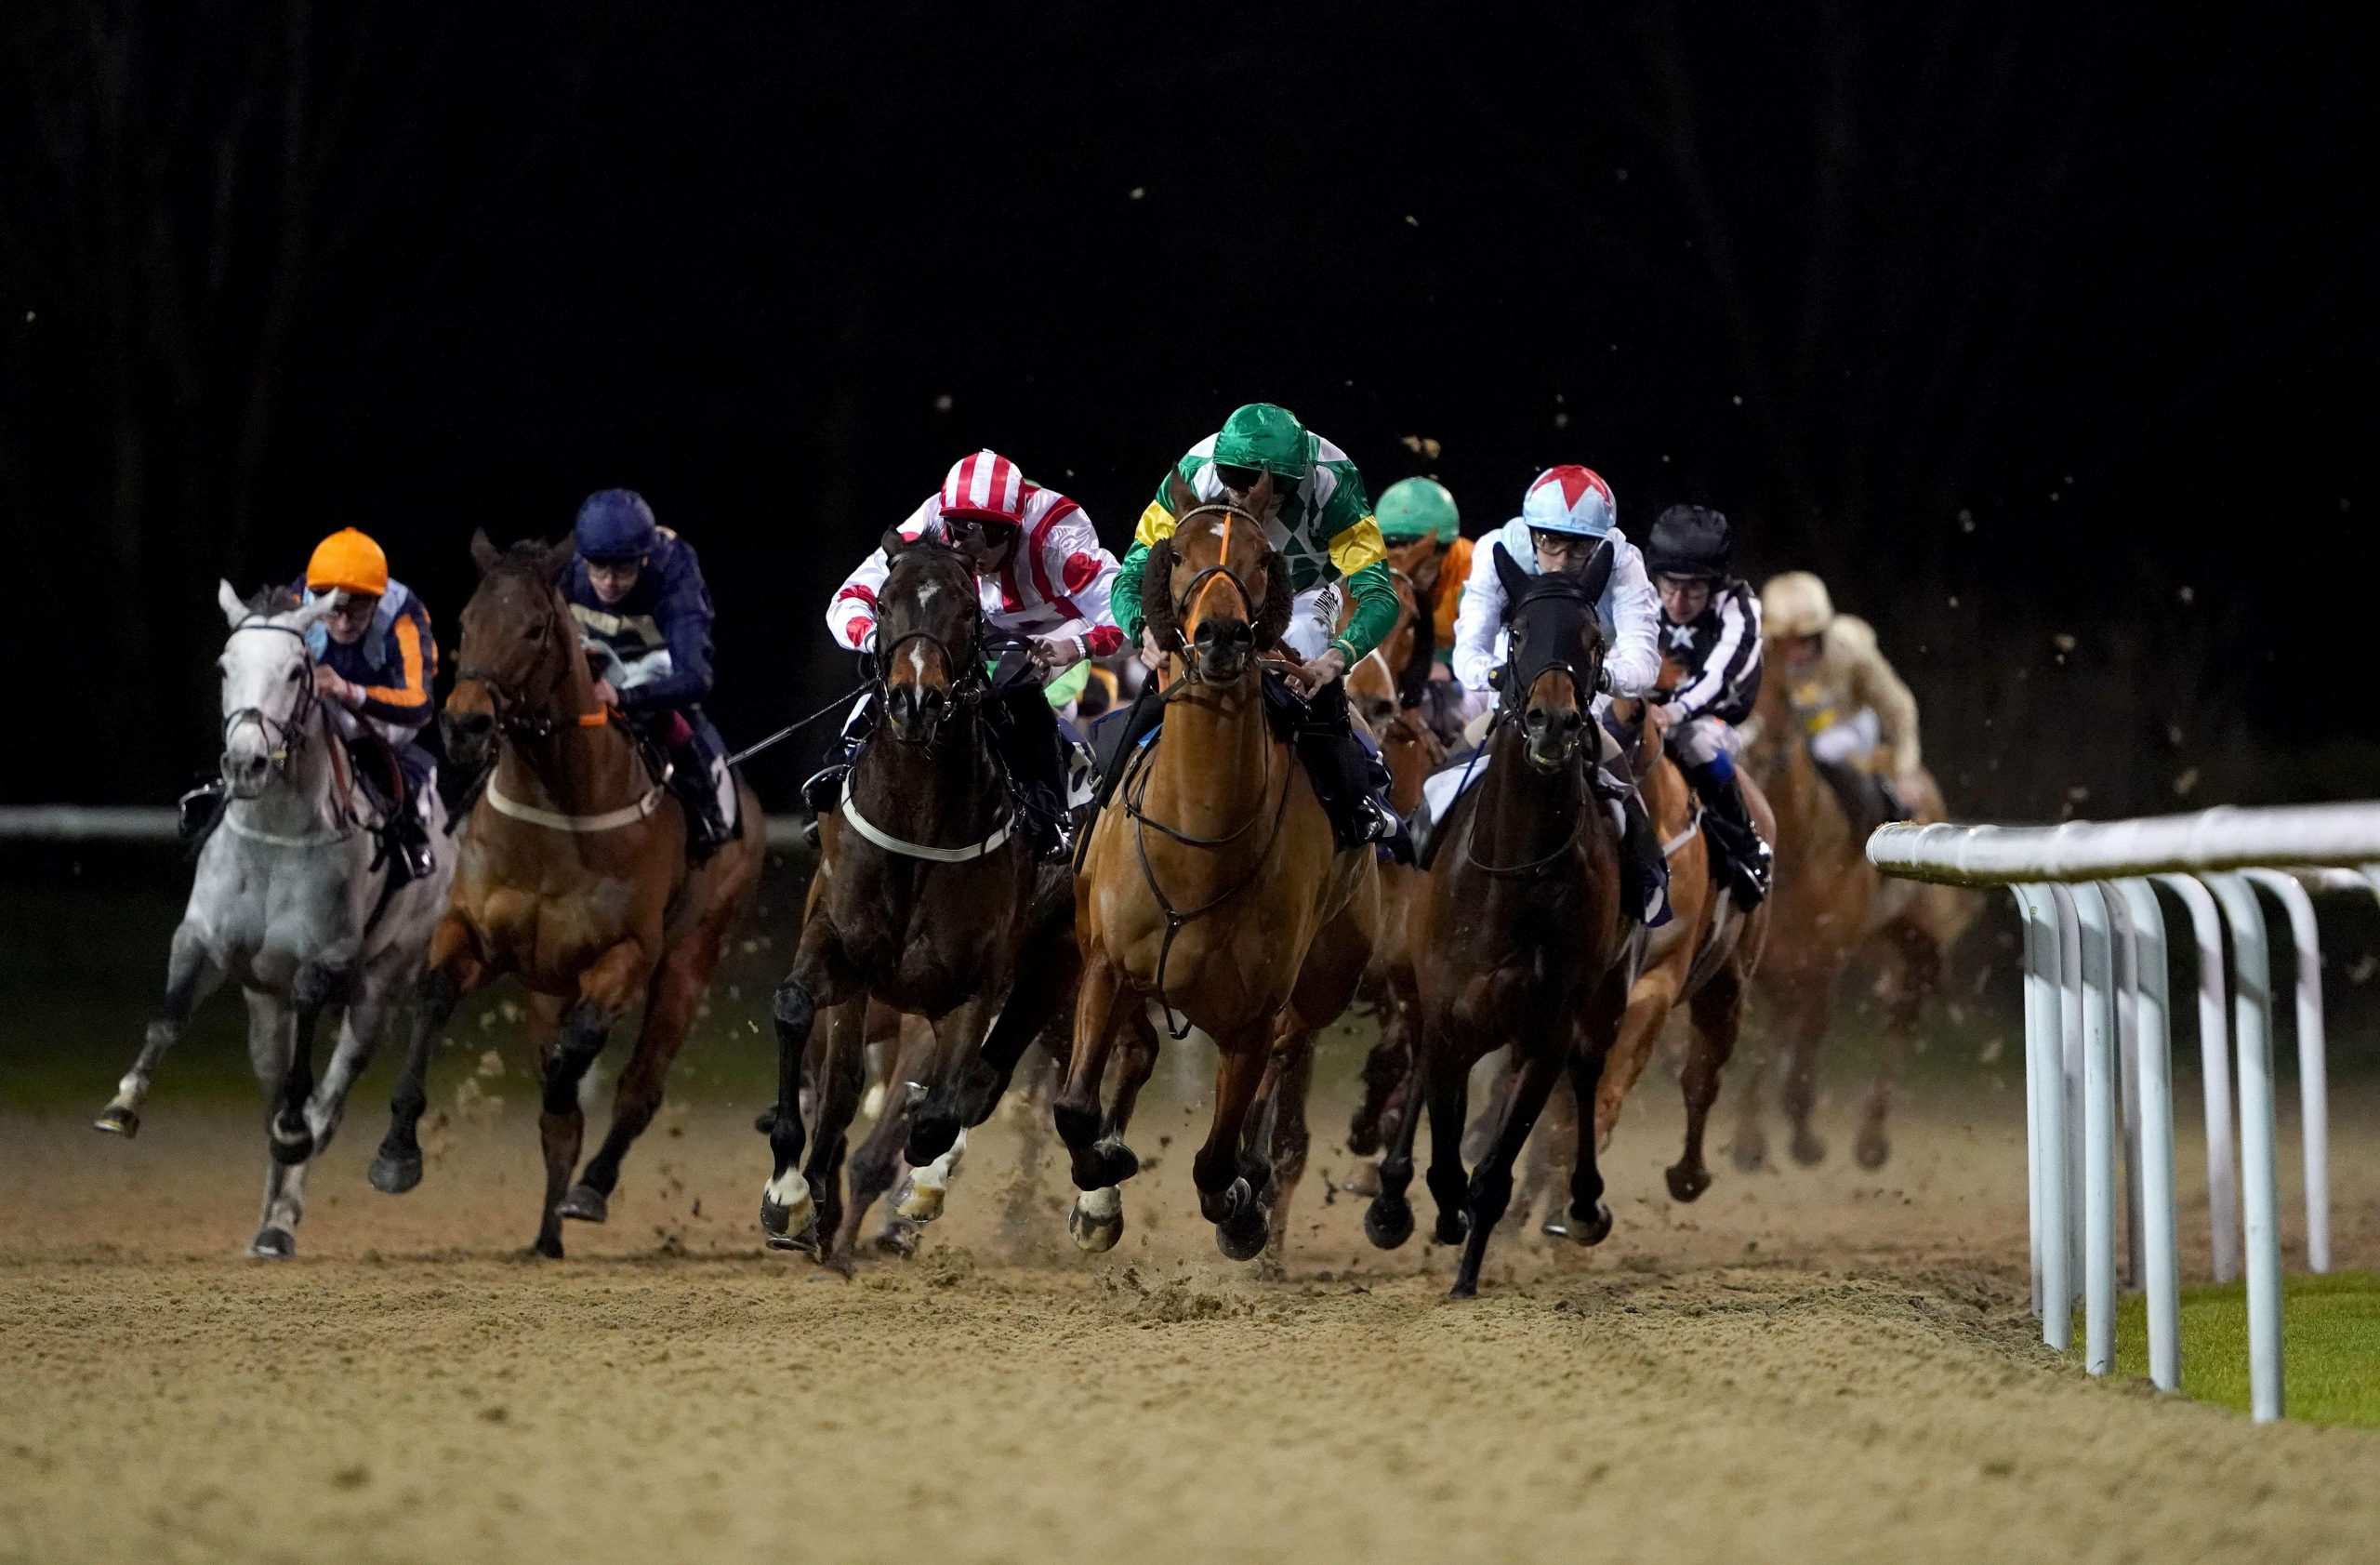 2BADFF8 Riders during the #betyourway At Betway Handicap (Class 5) at Wolverhampton Racecourse.